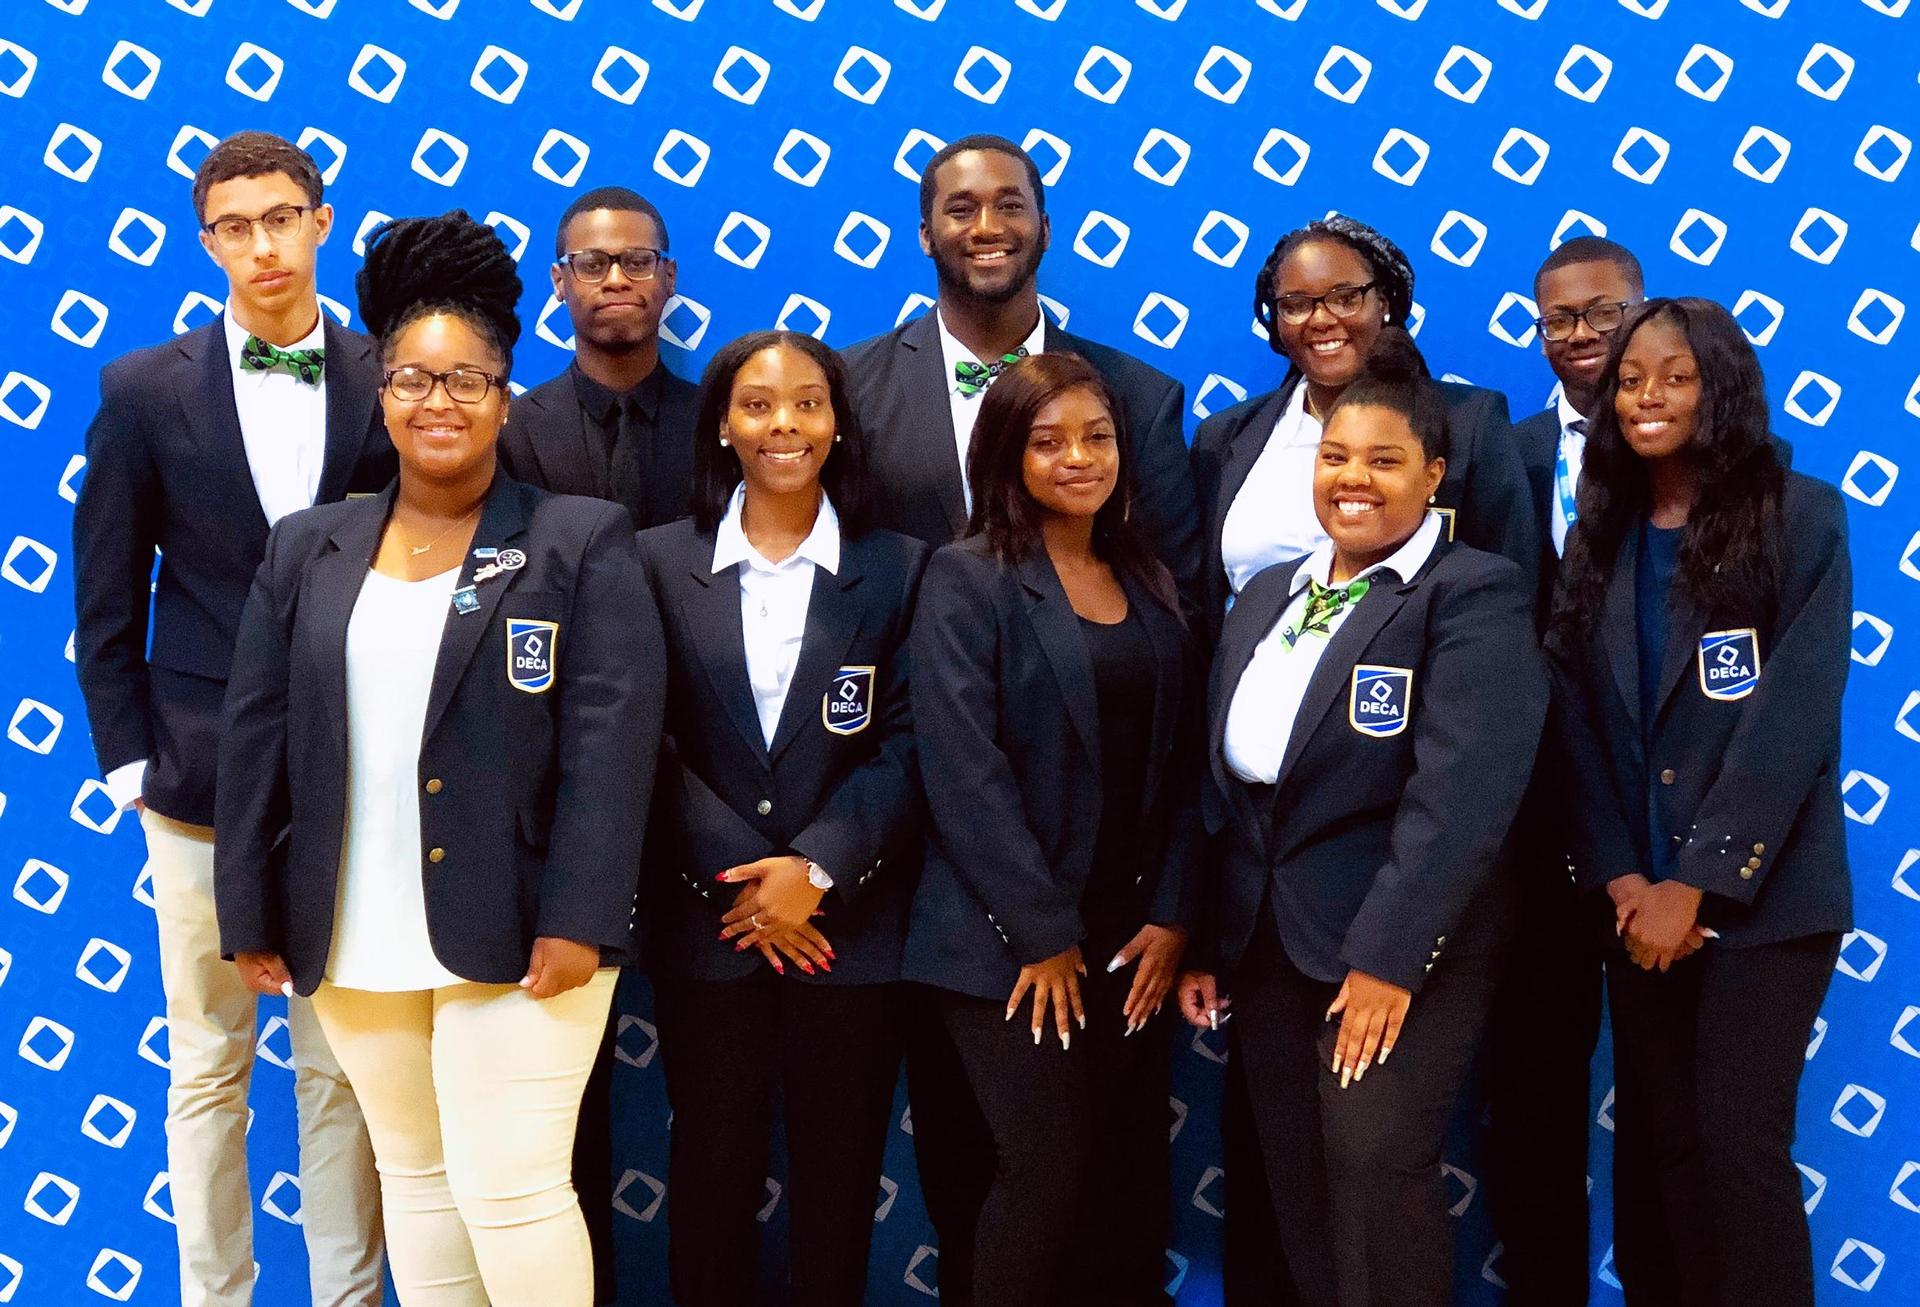 A photo of Baker High DECA students' experience at international conference in Orlando,